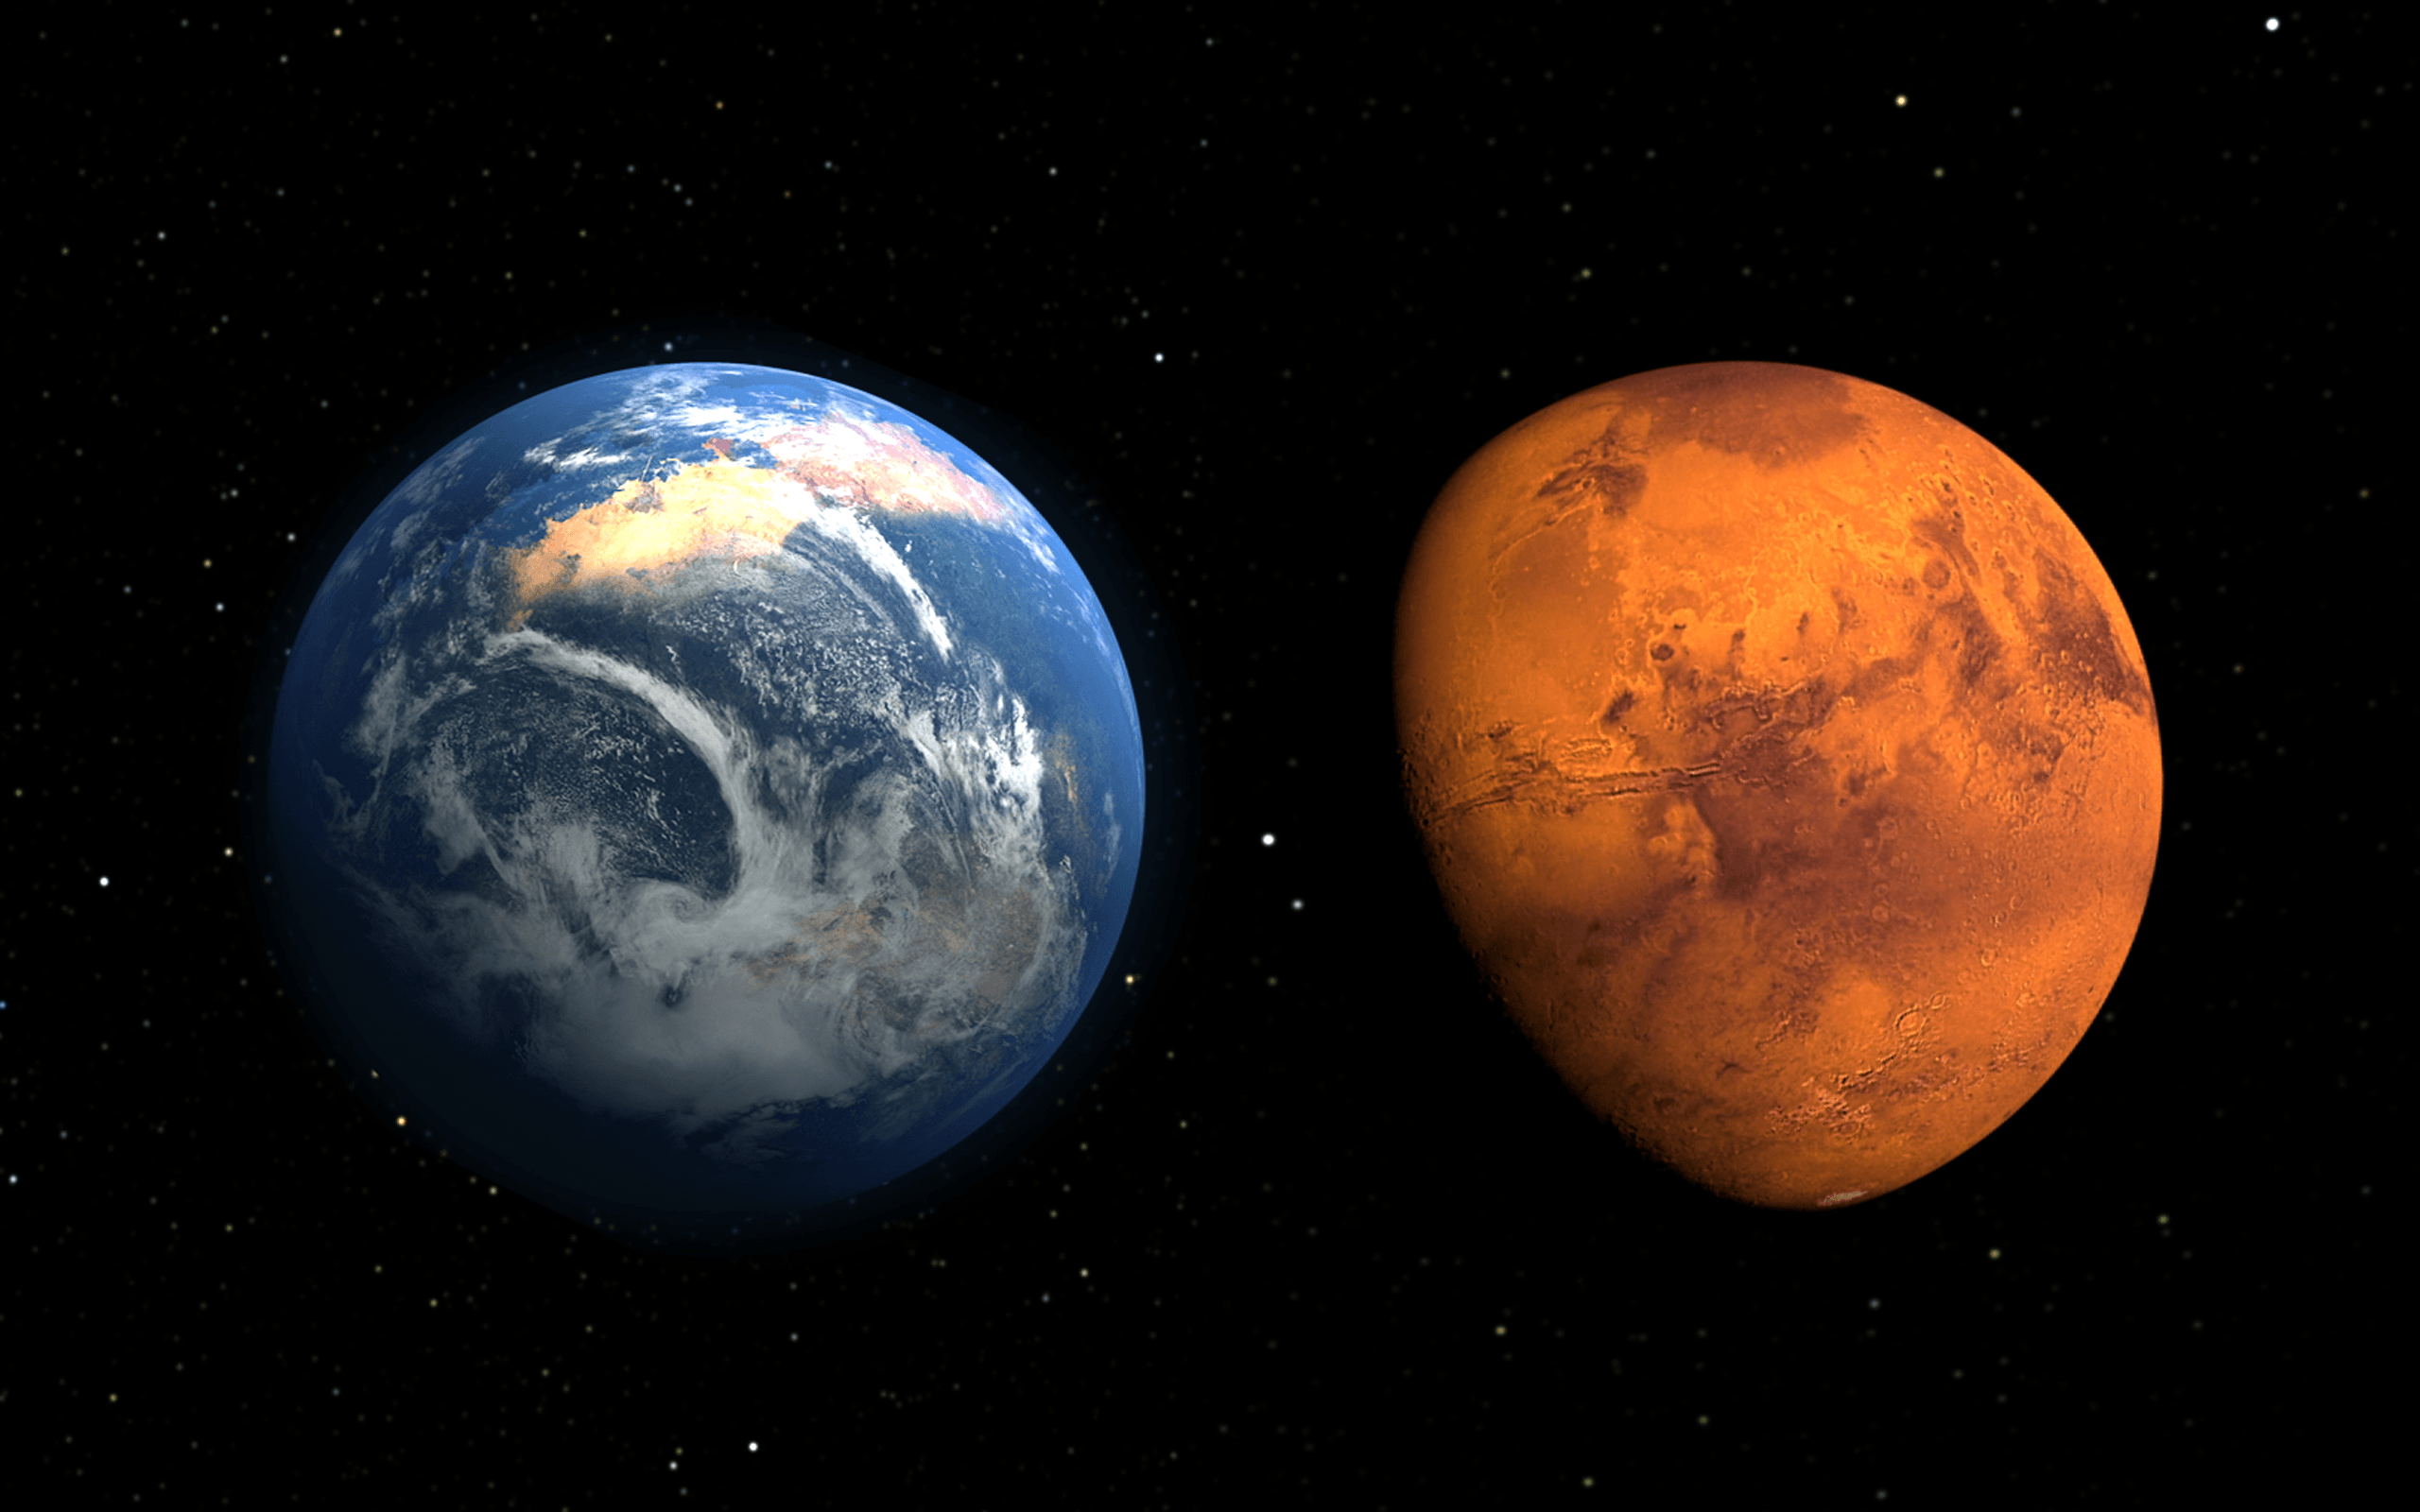 Earth And Mars Compare Hd Wallpapers : Wallpapers13